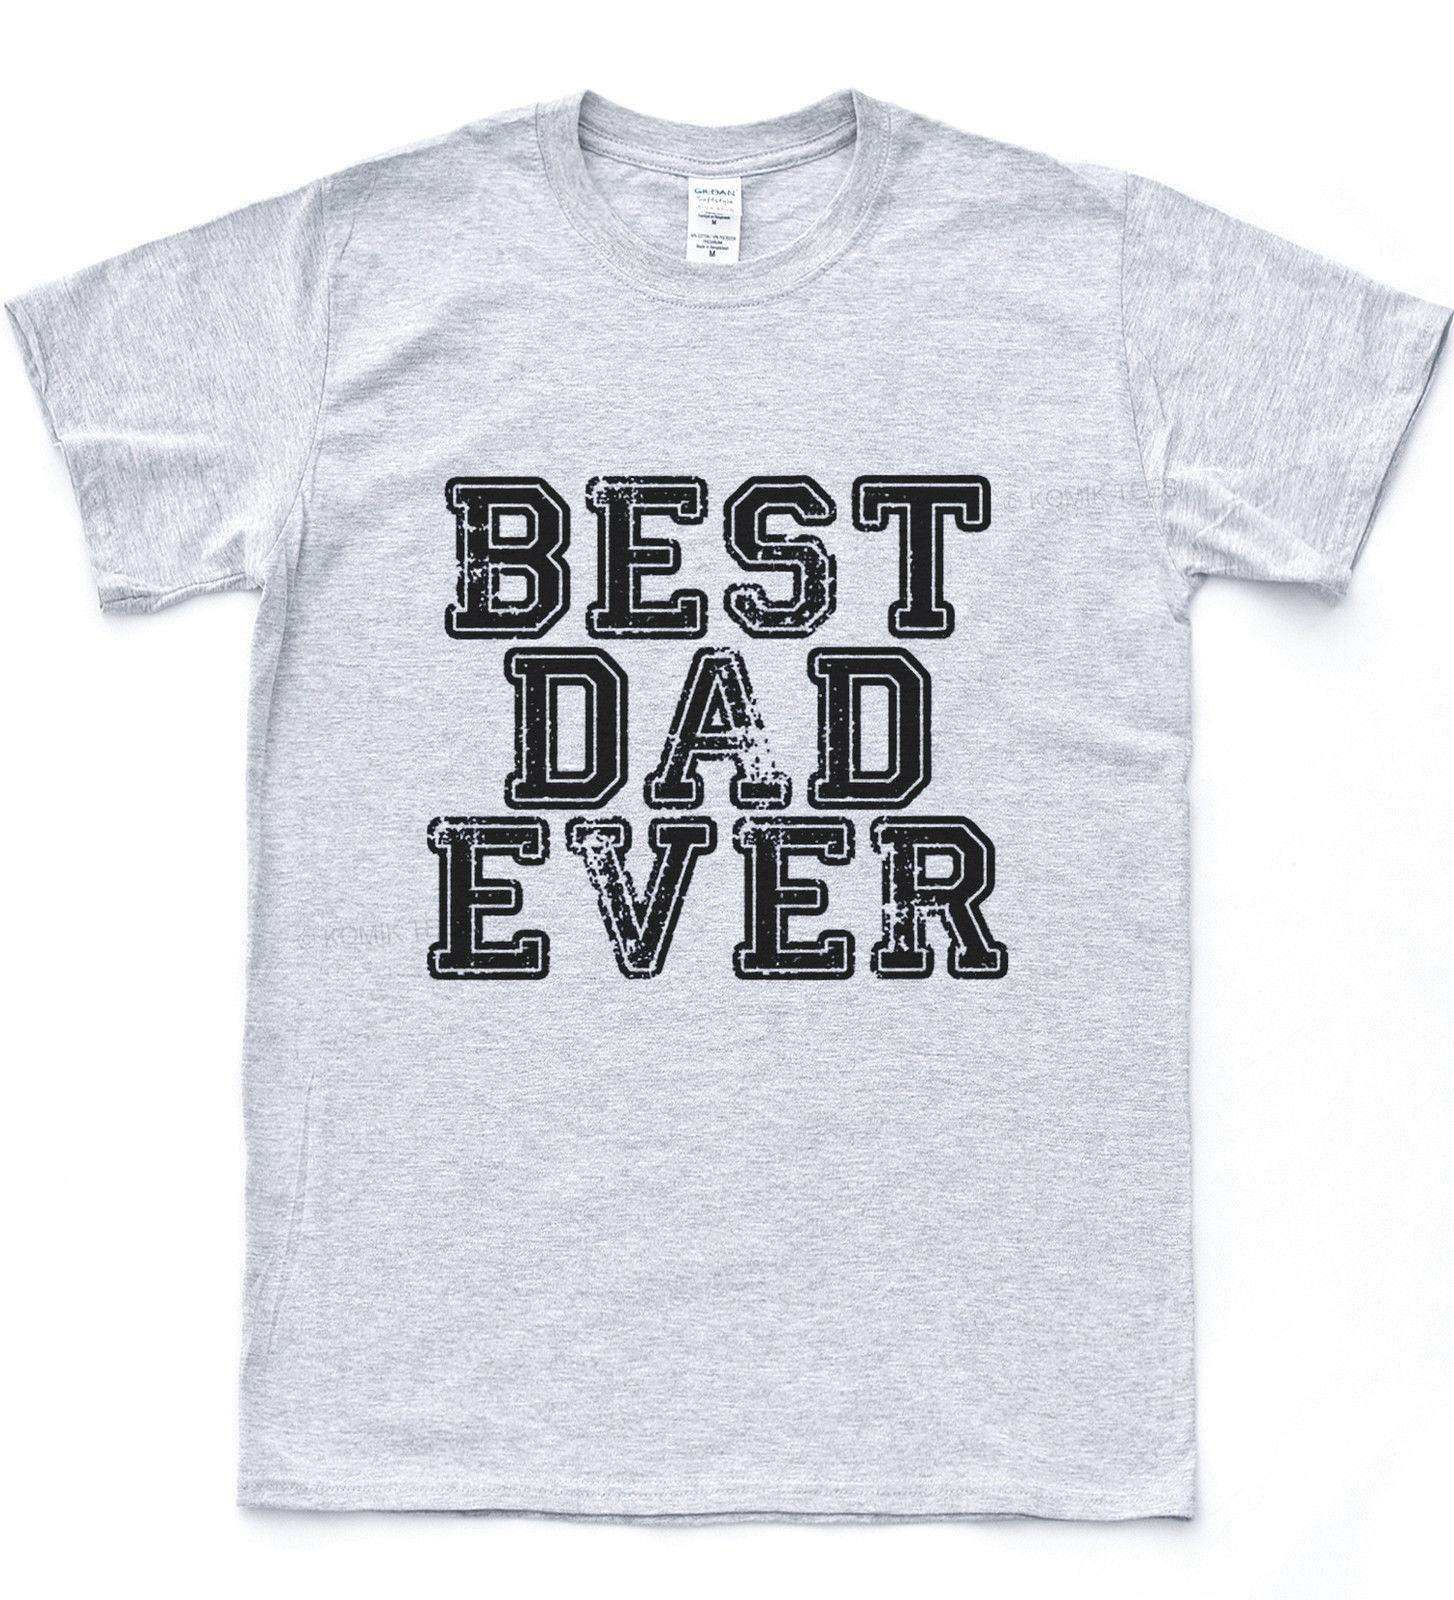 3b34cd97 Best Dad Ever T Shirt Award Great Father Day Tee Special Amazing Prize Top  Size Discout Hot New Tshirt Hoodie Hip Hop T Shirt Humor Tees Funny Tee  From ...